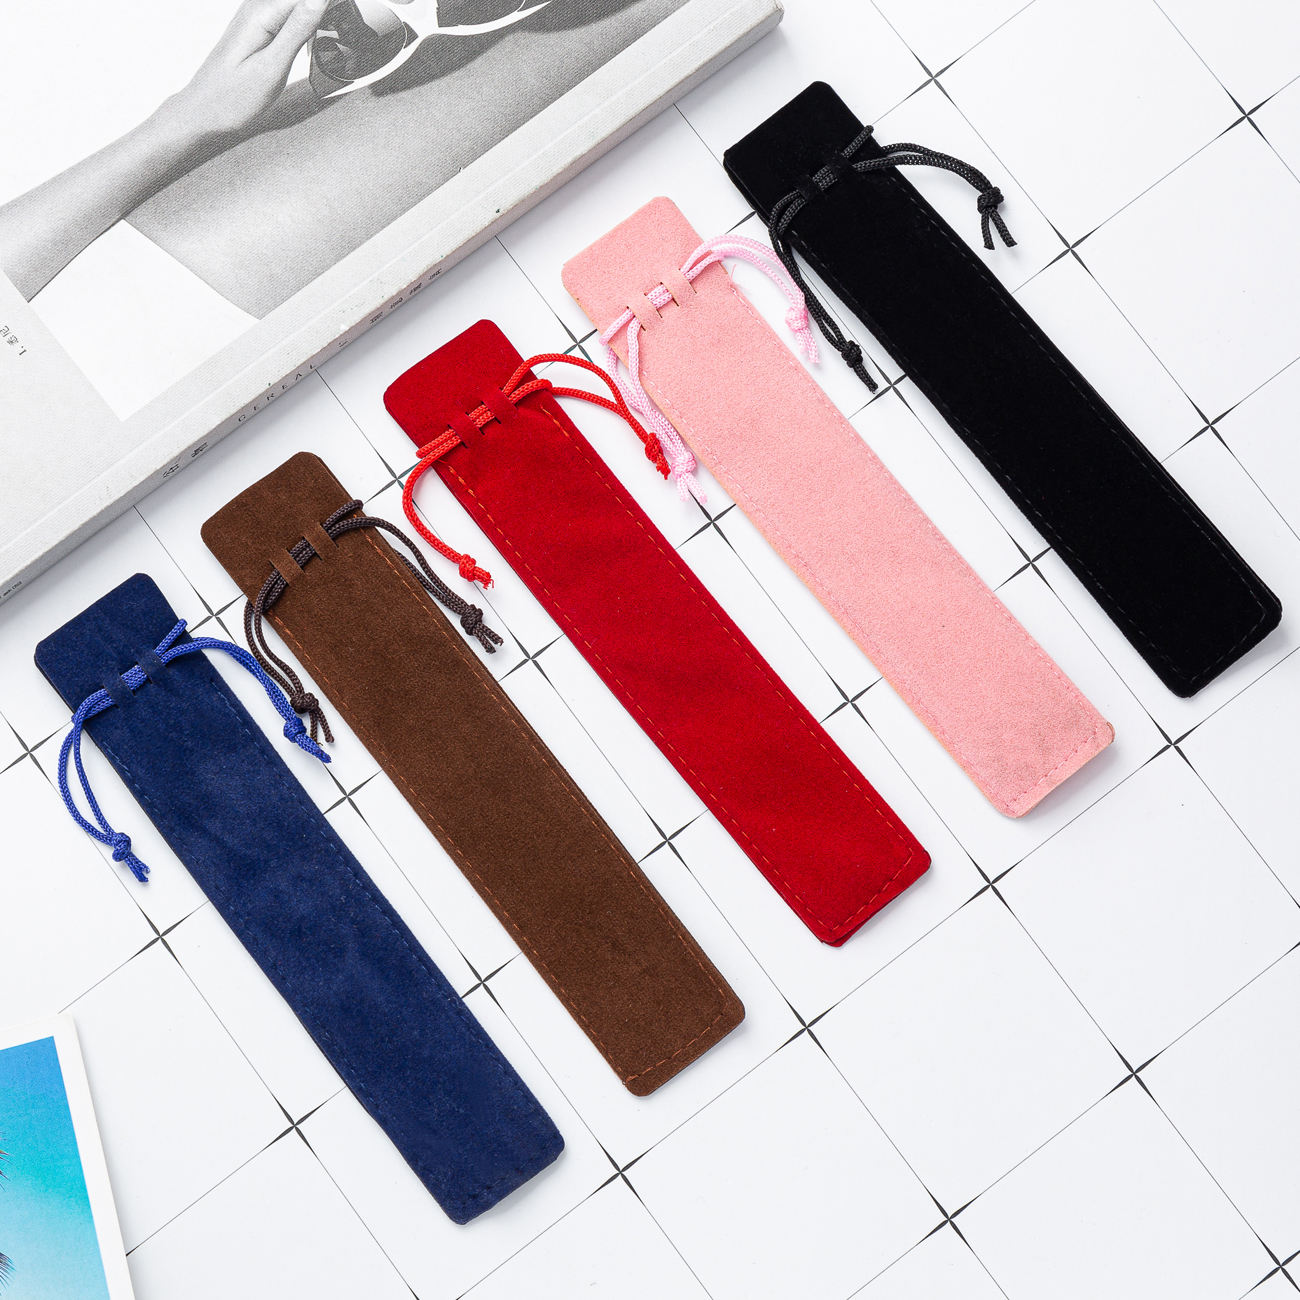 Newest Hot Luxury Thick Drawstring Pen's Velvett Pouch Customized Color and Logo Pen Gift Bag